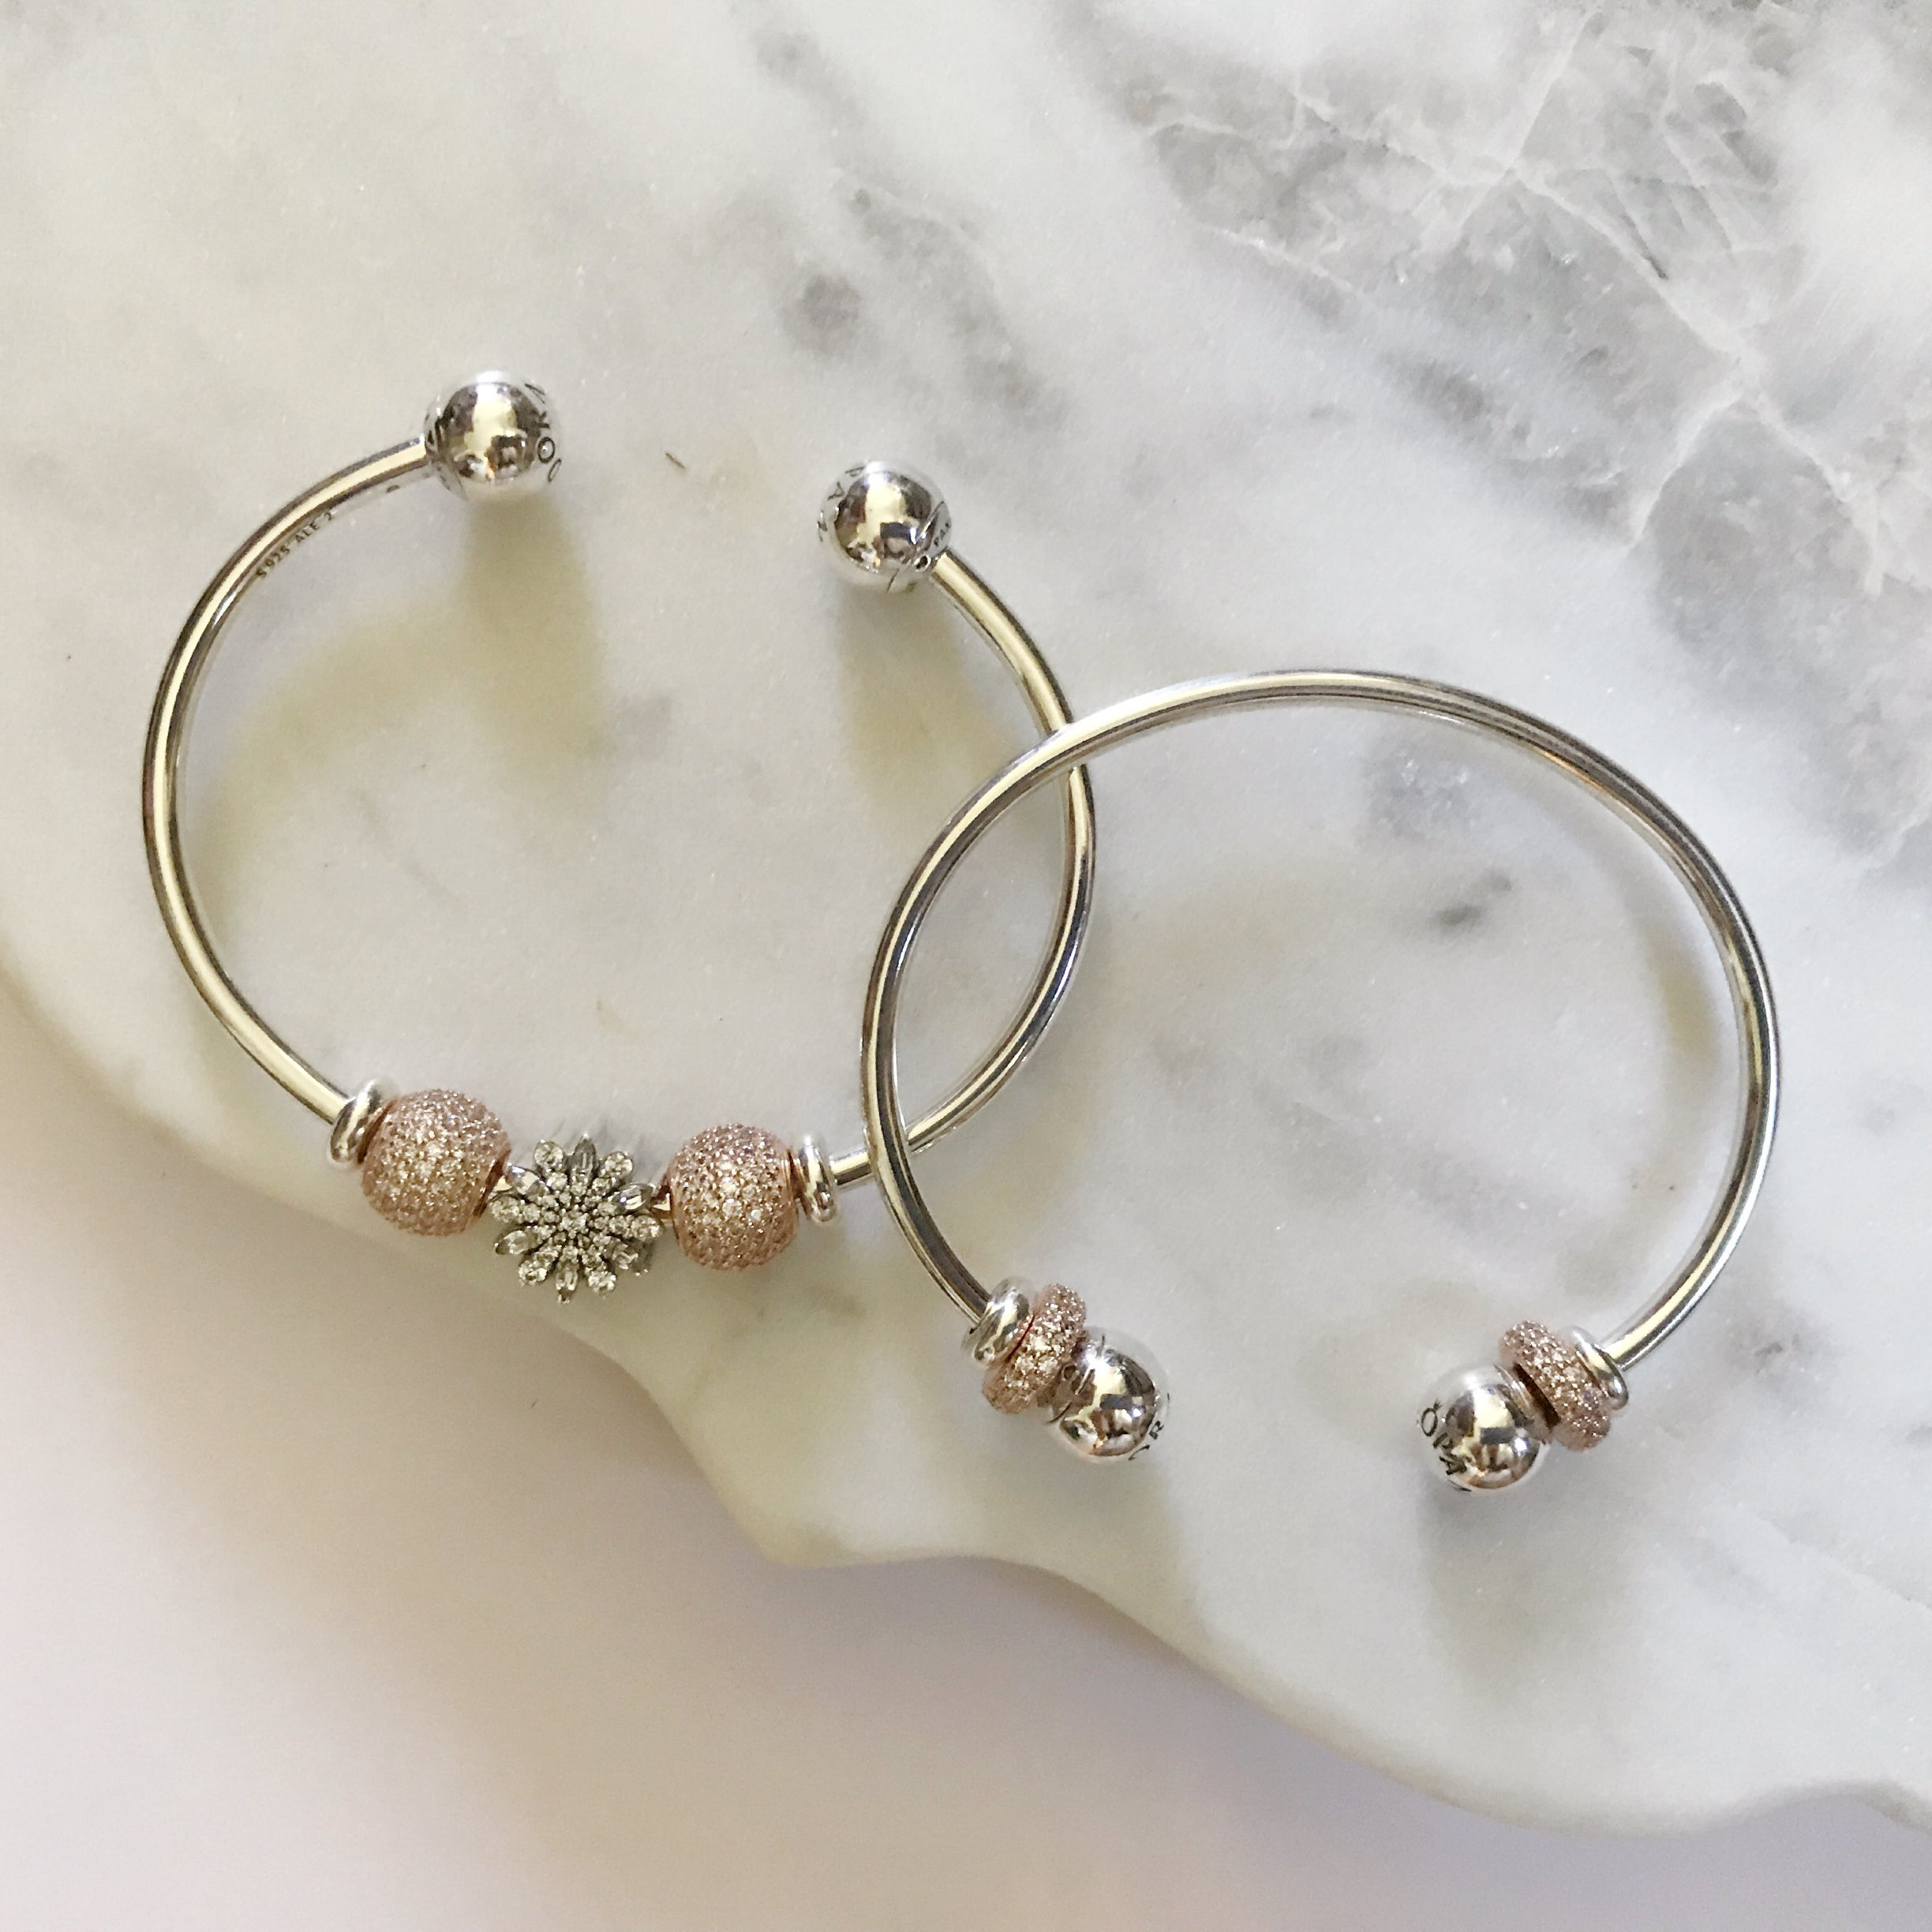 bangle the mixing charm at introducing bangles by versant bracelets pandora with bethlehem open new rose touch in we index arrival a love of silver bright